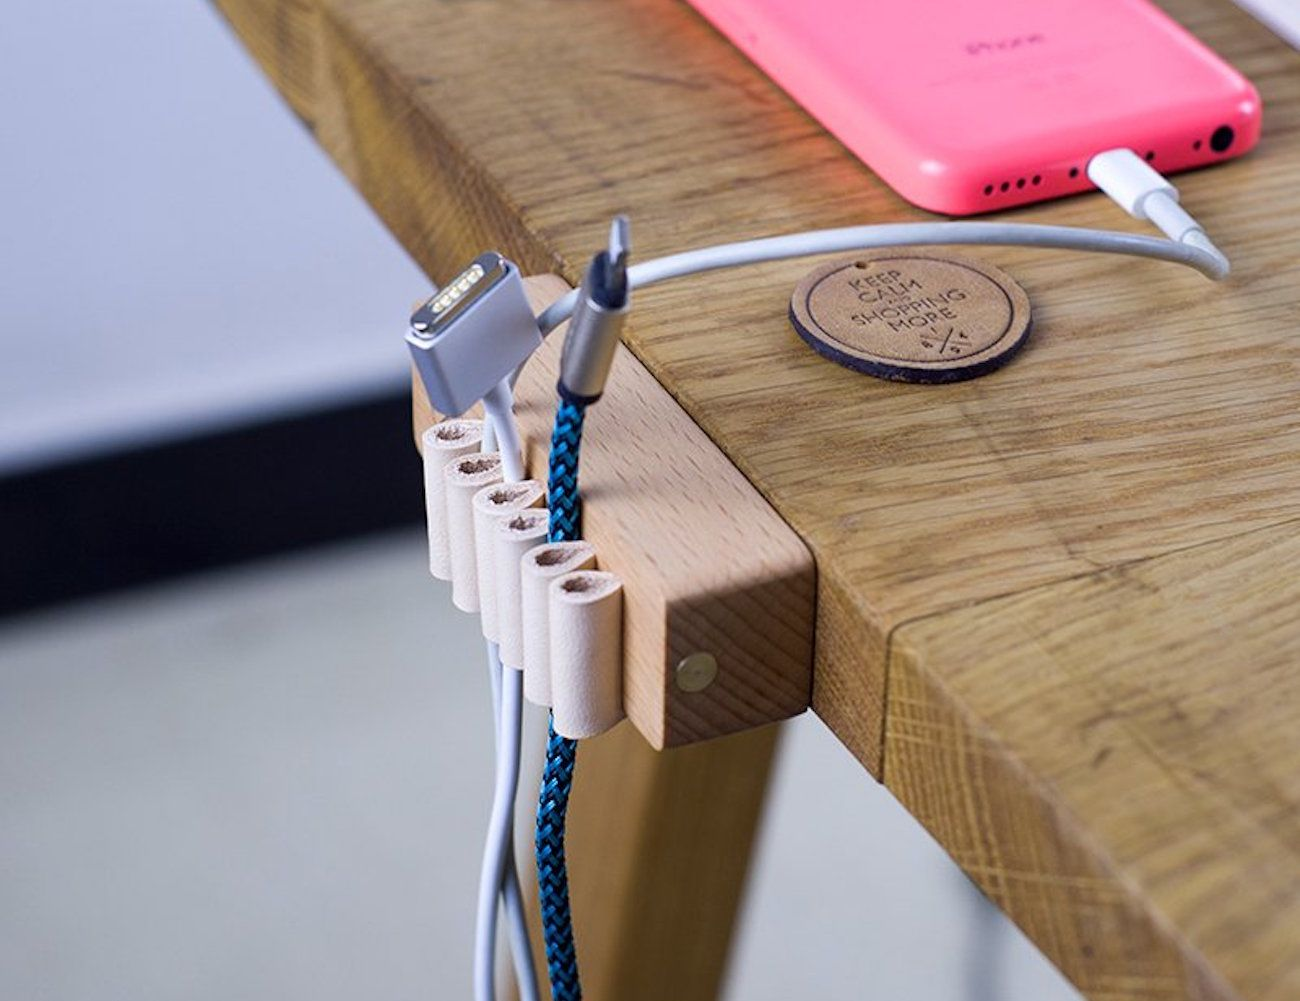 office cable tidy. The Perfect Office - Me-PEN, HP ENVY Desktop And Ideas. Hp Envy DesktopCable ManagementYanko Cable Tidy